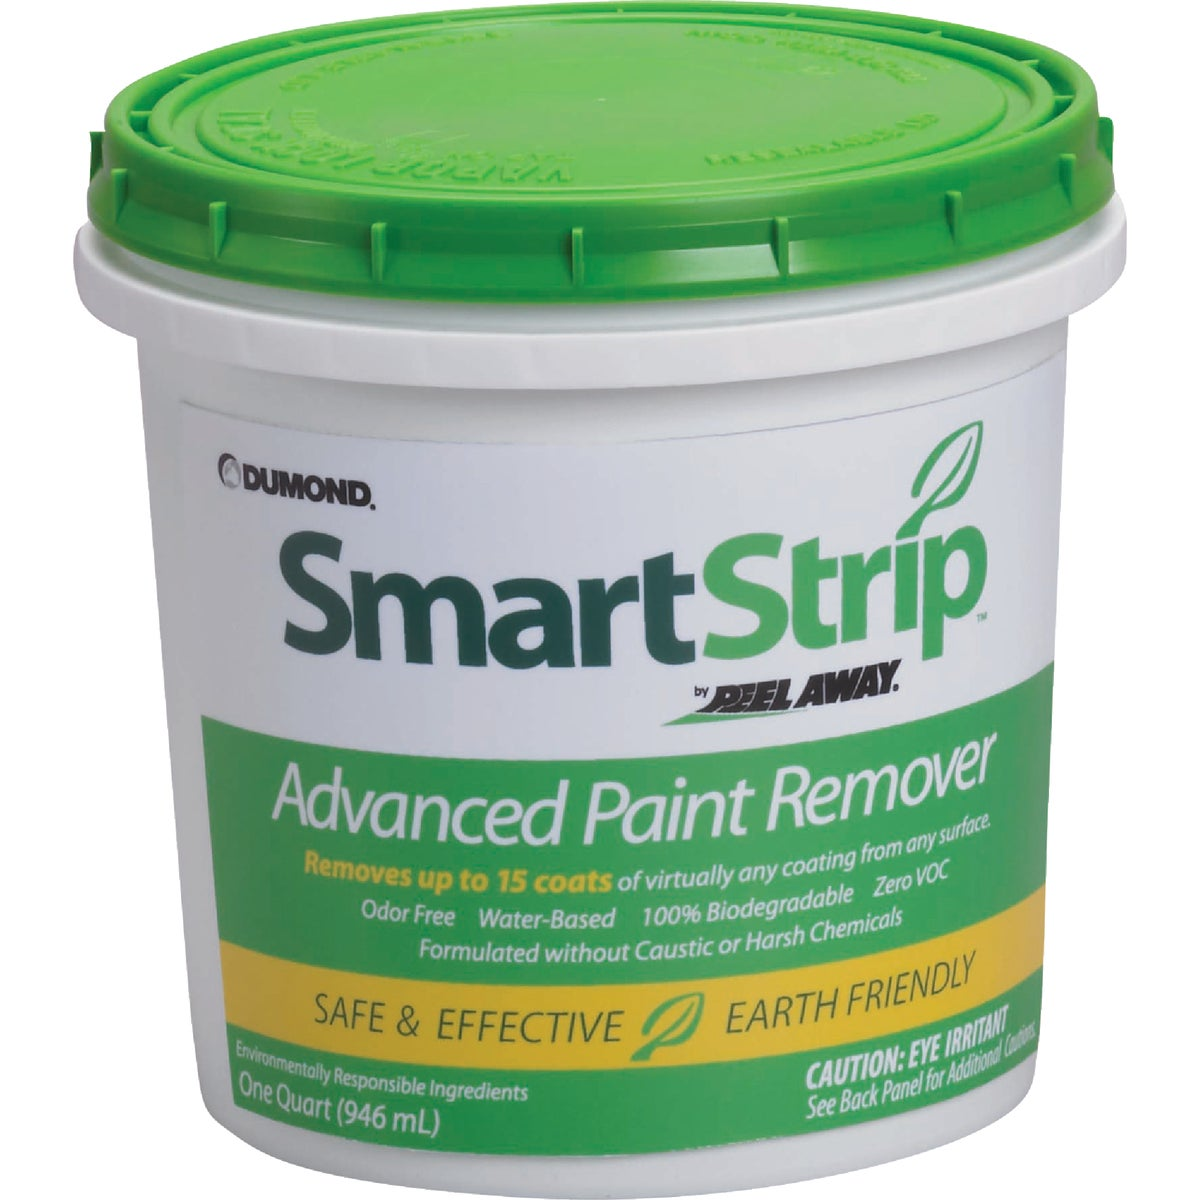 SMARTSTRP PAINT STRIPPER - 3332 by Dumond Chemicals